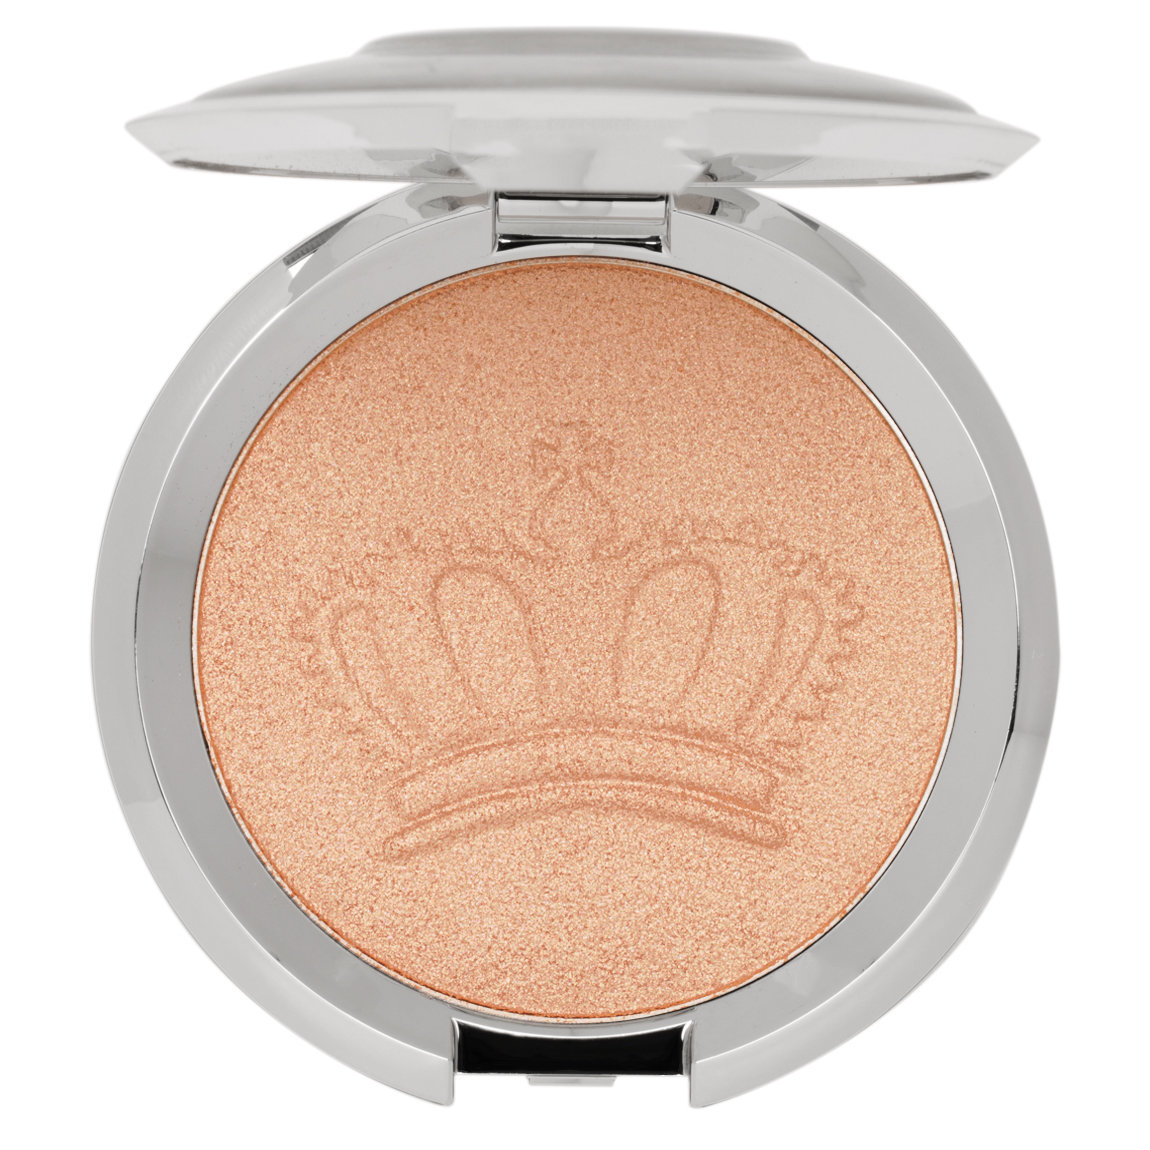 BECCA Cosmetics Shimmering Skin Perfector Pressed Highlighter Royal Glow alternative view 1 - product swatch.